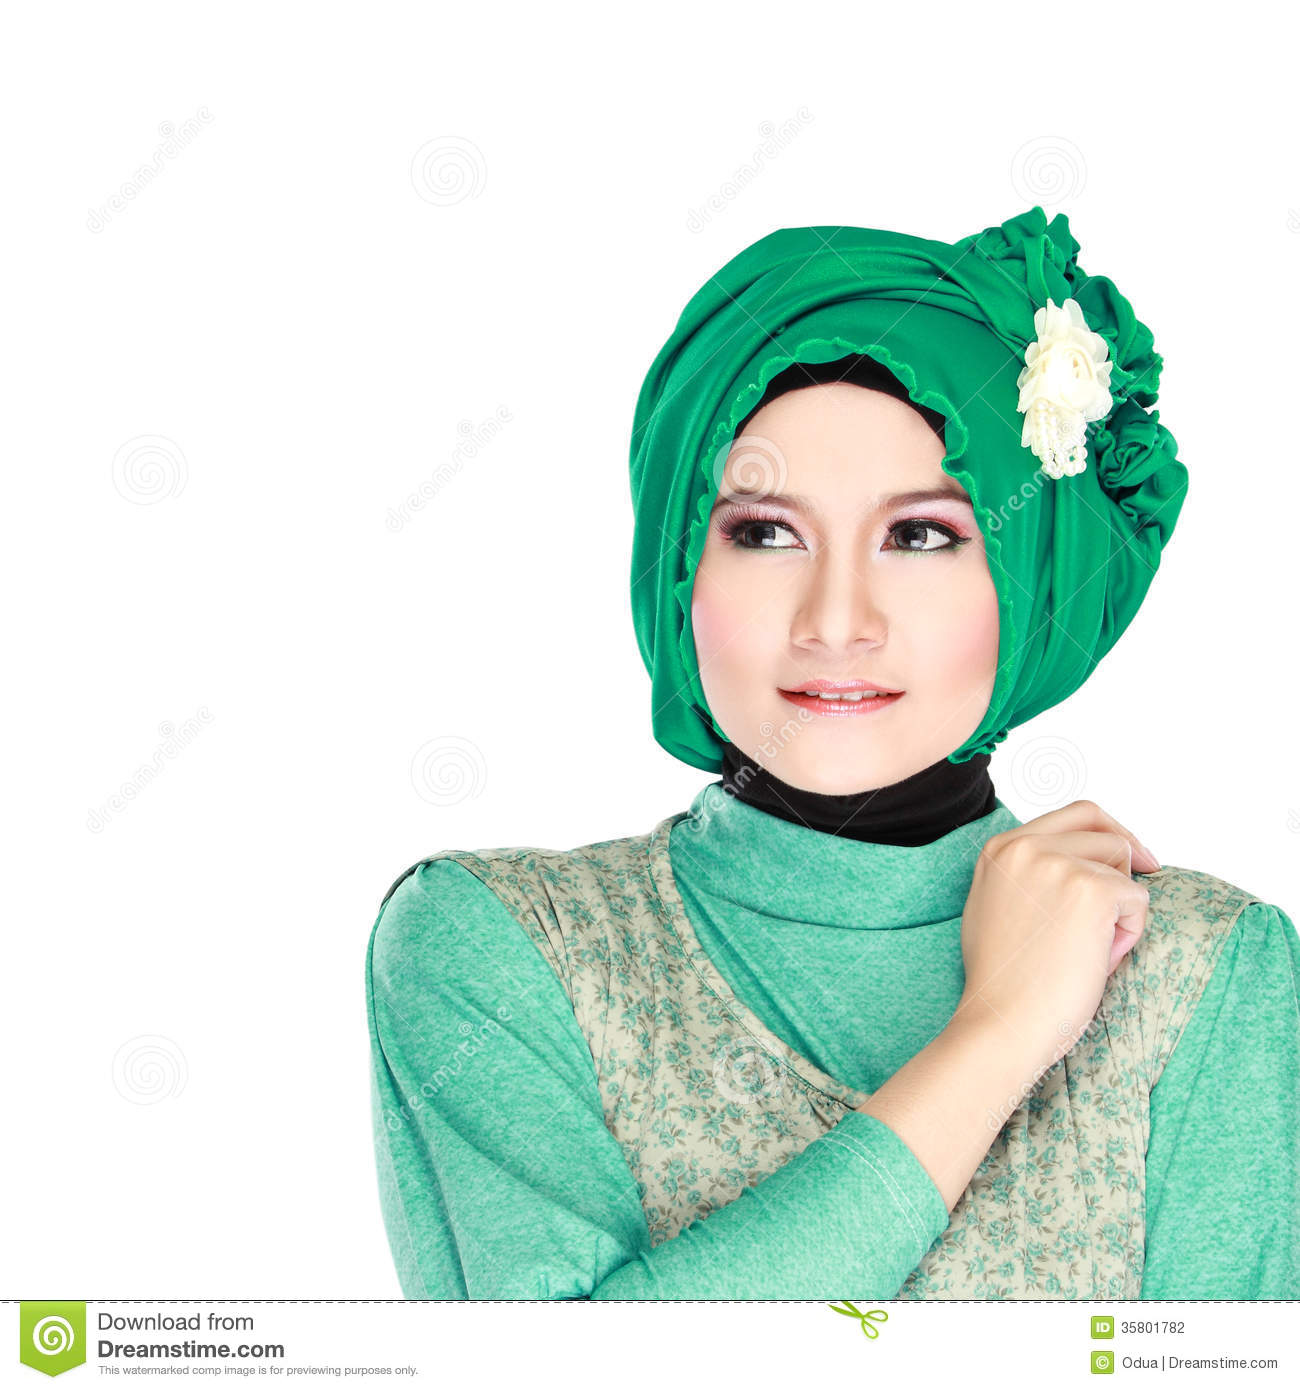 hopkins park muslim women dating site Register for free today to meet singles on our muslim dating site at eharmony,  we take pride in matching you with the most compatible people in your area.